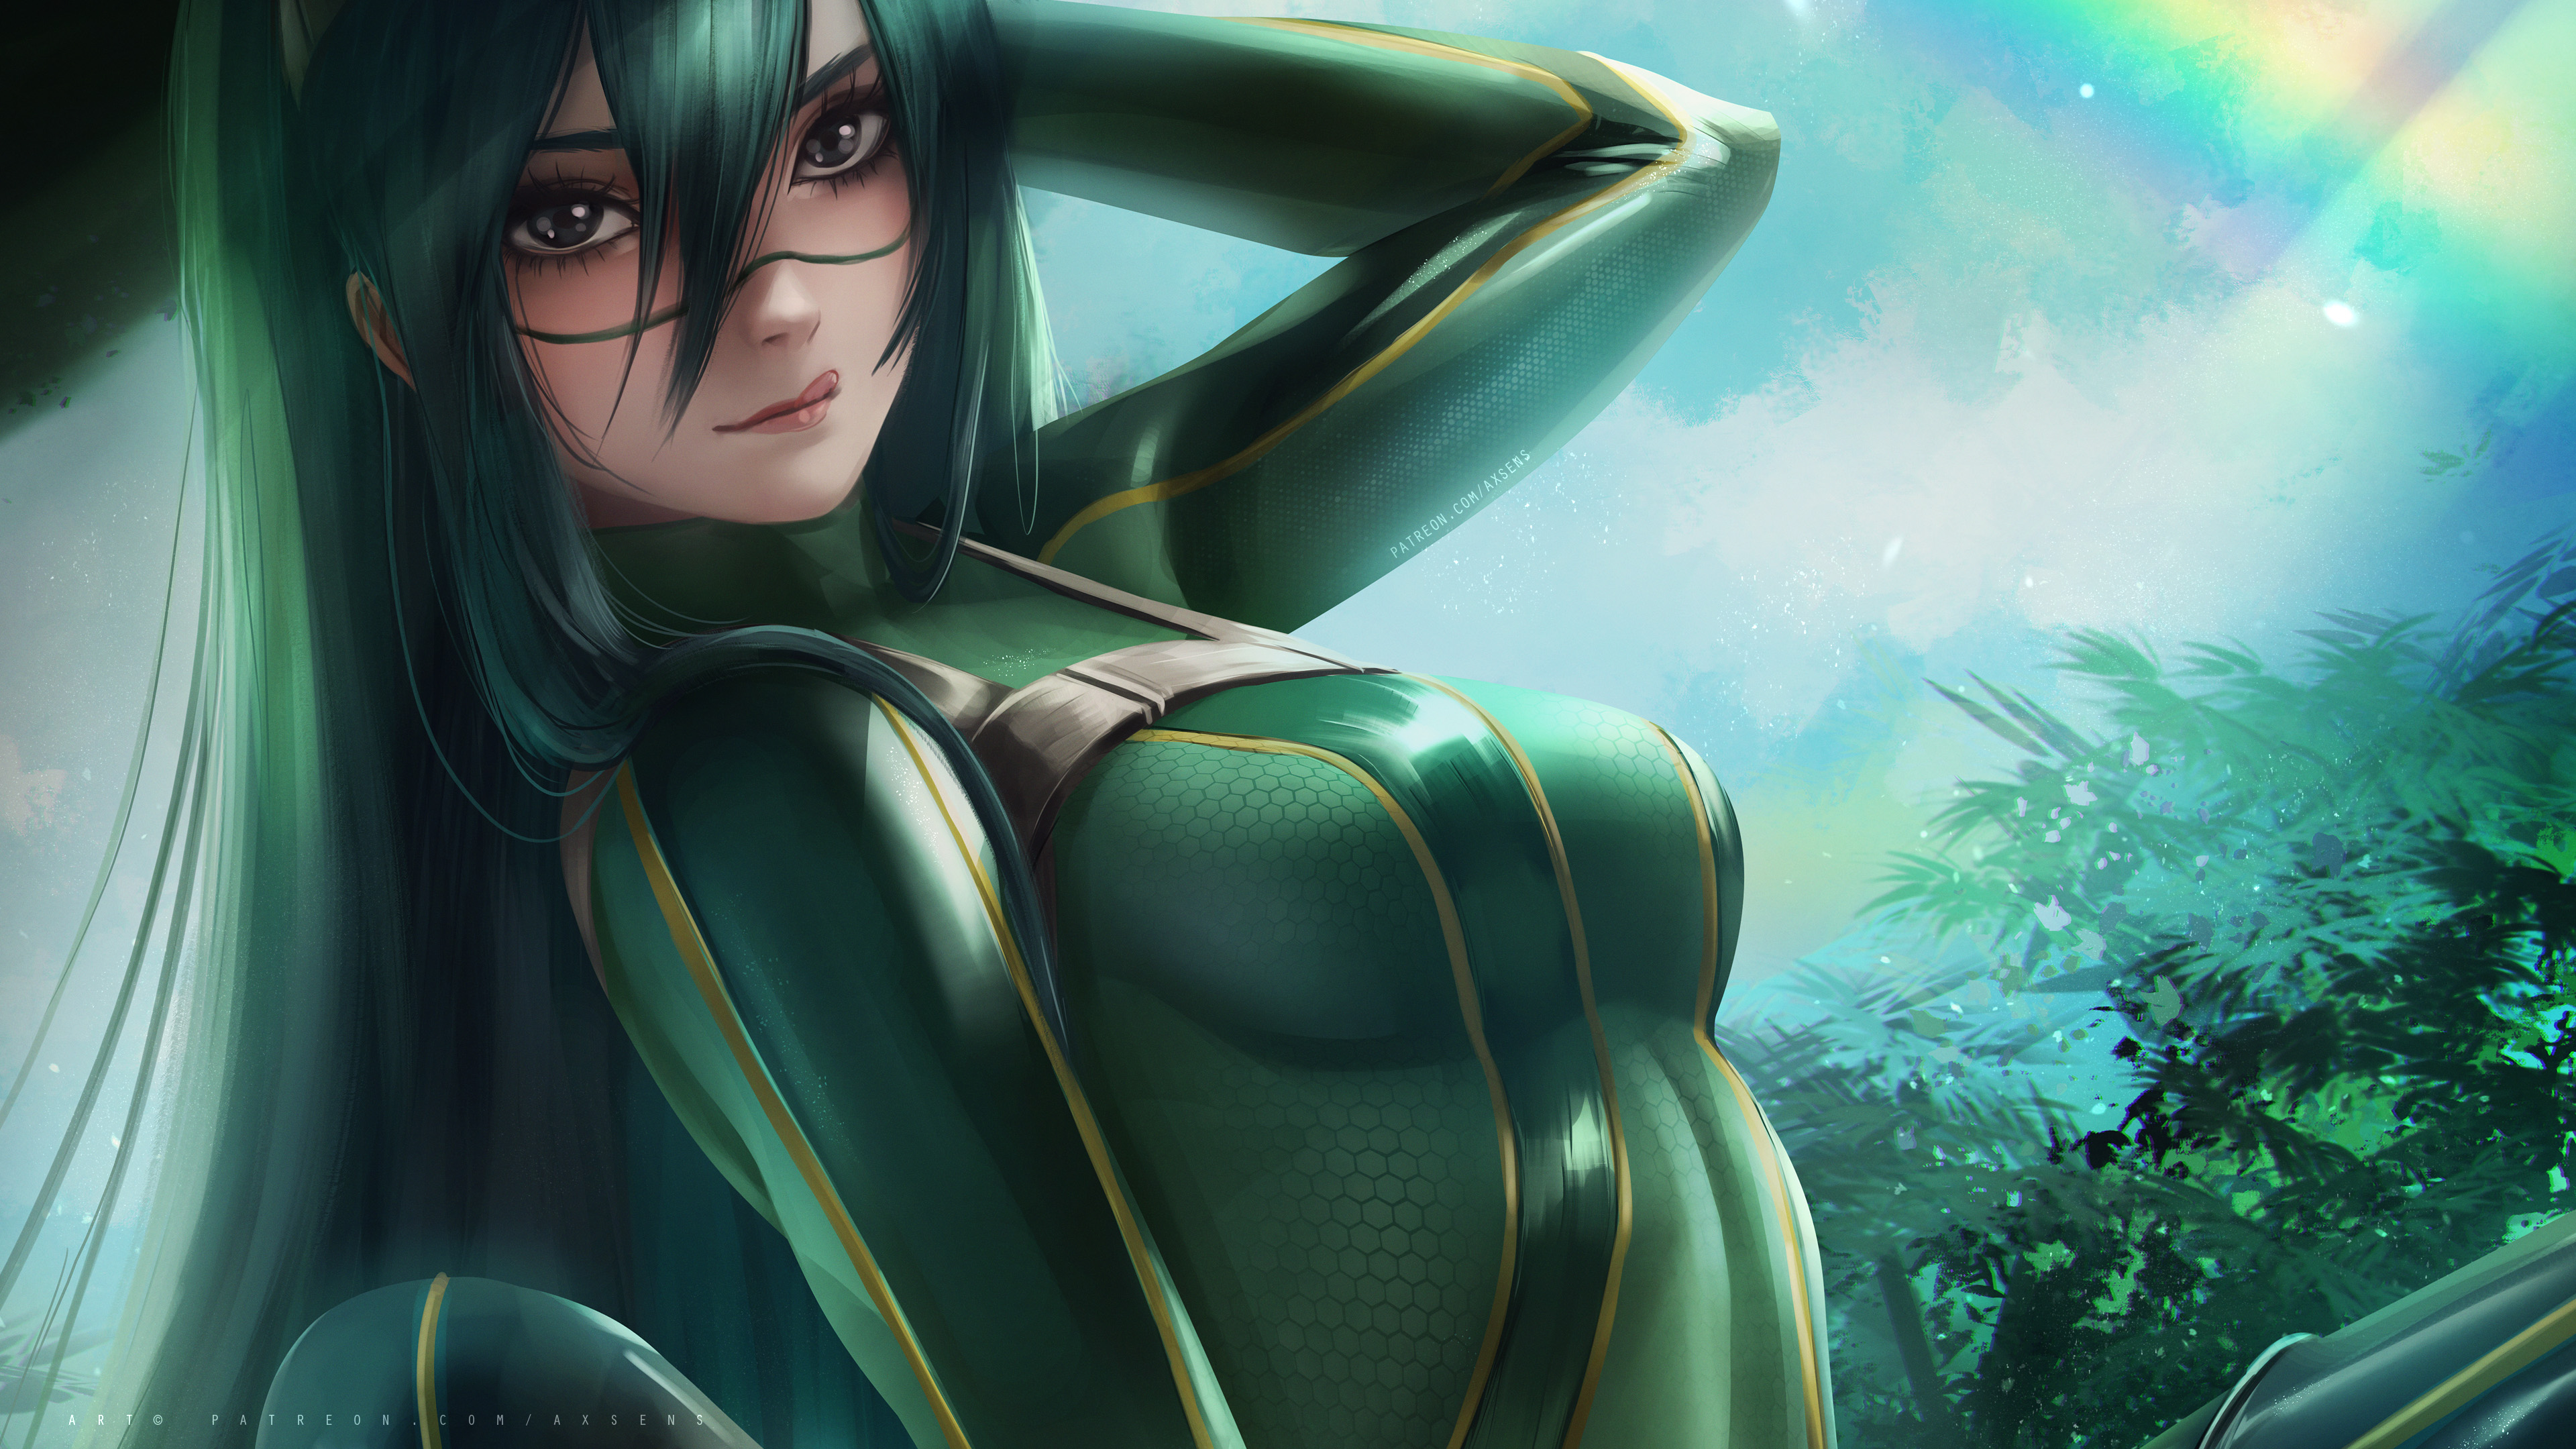 Froppy Ps4wallpapers Com